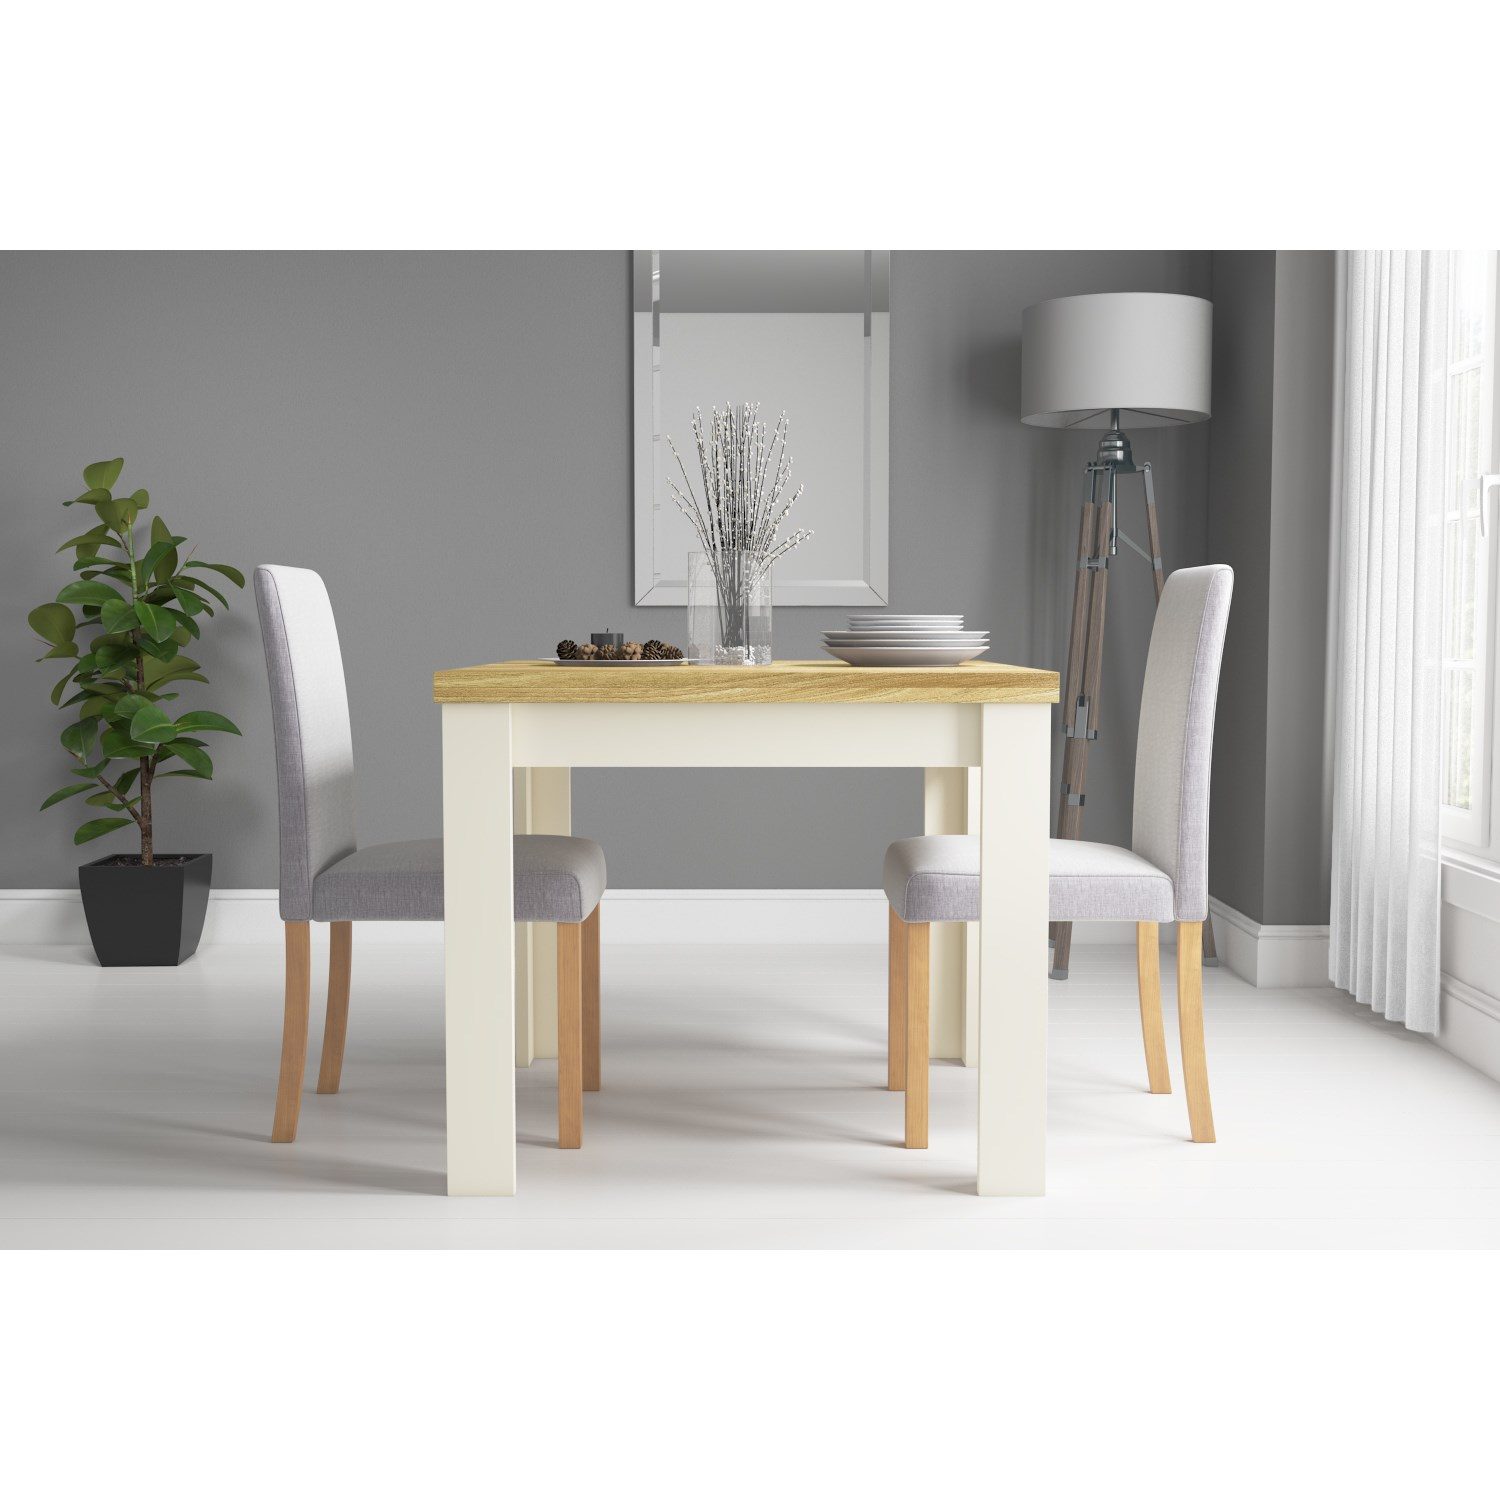 Picture of: New Town Farmhouse Flip Top Cream Oak Dining Table Seats 4 Furniture123